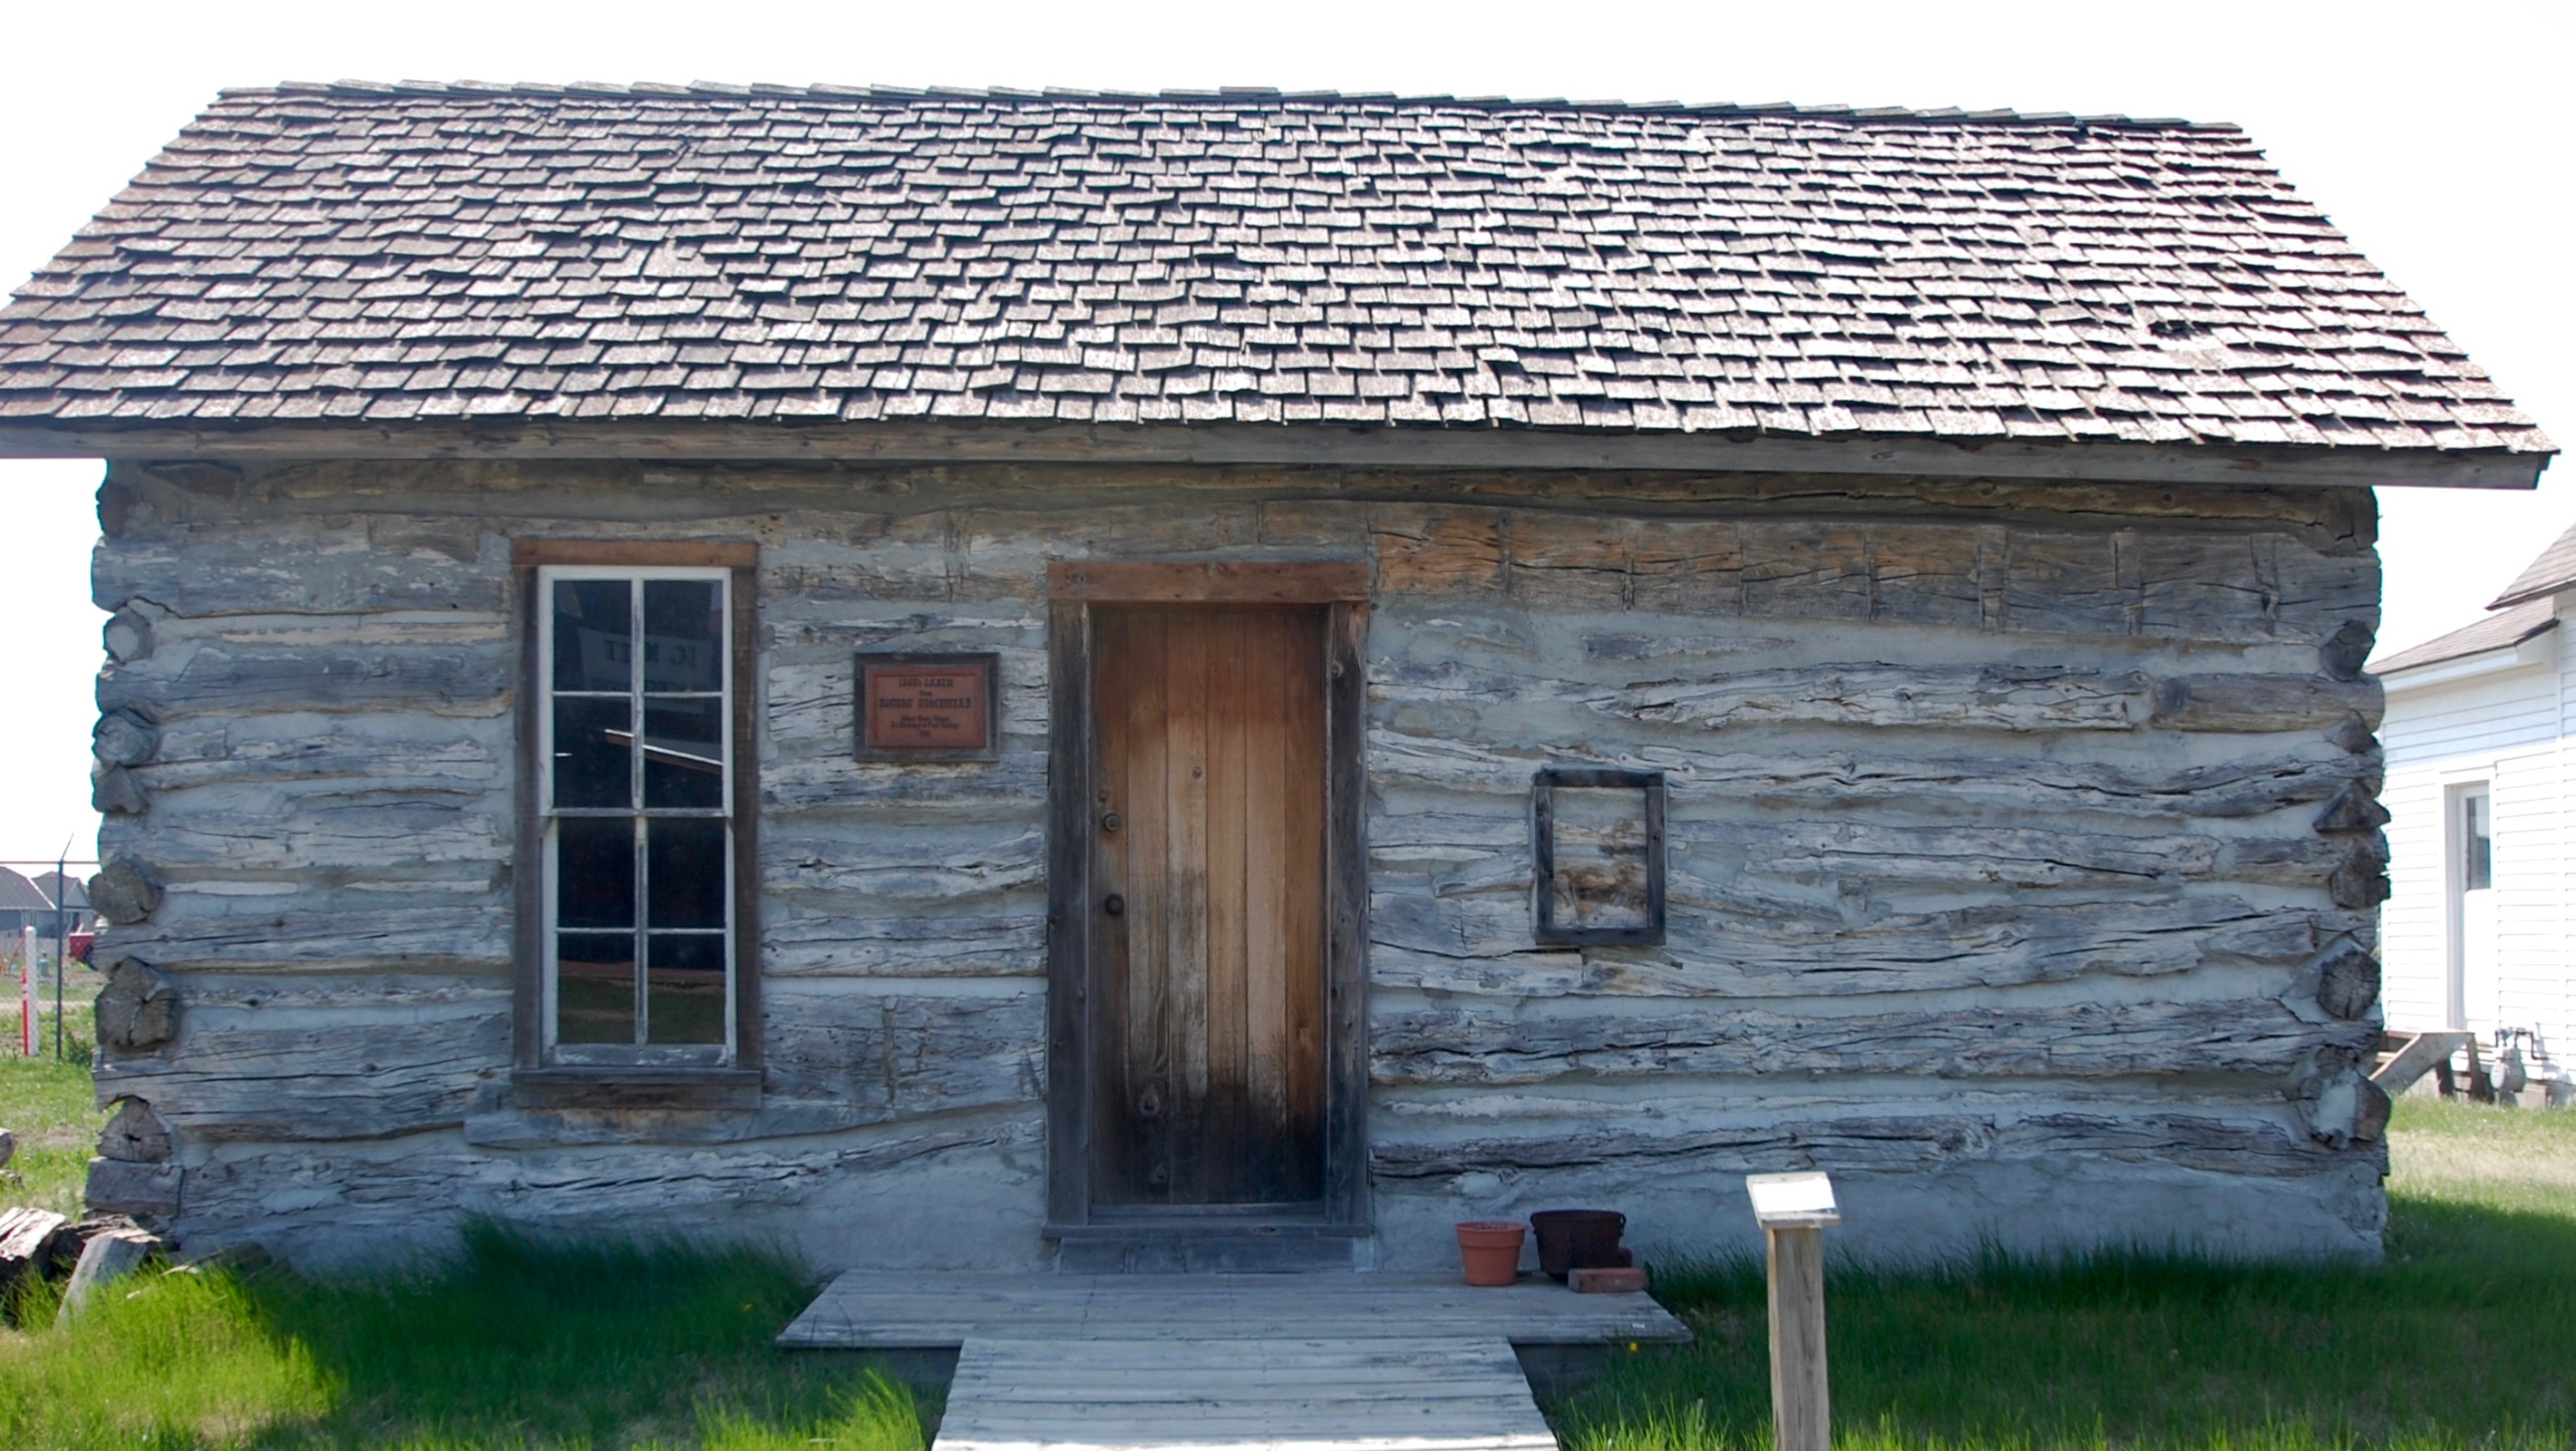 The Cabin as it stands at the Museum today.